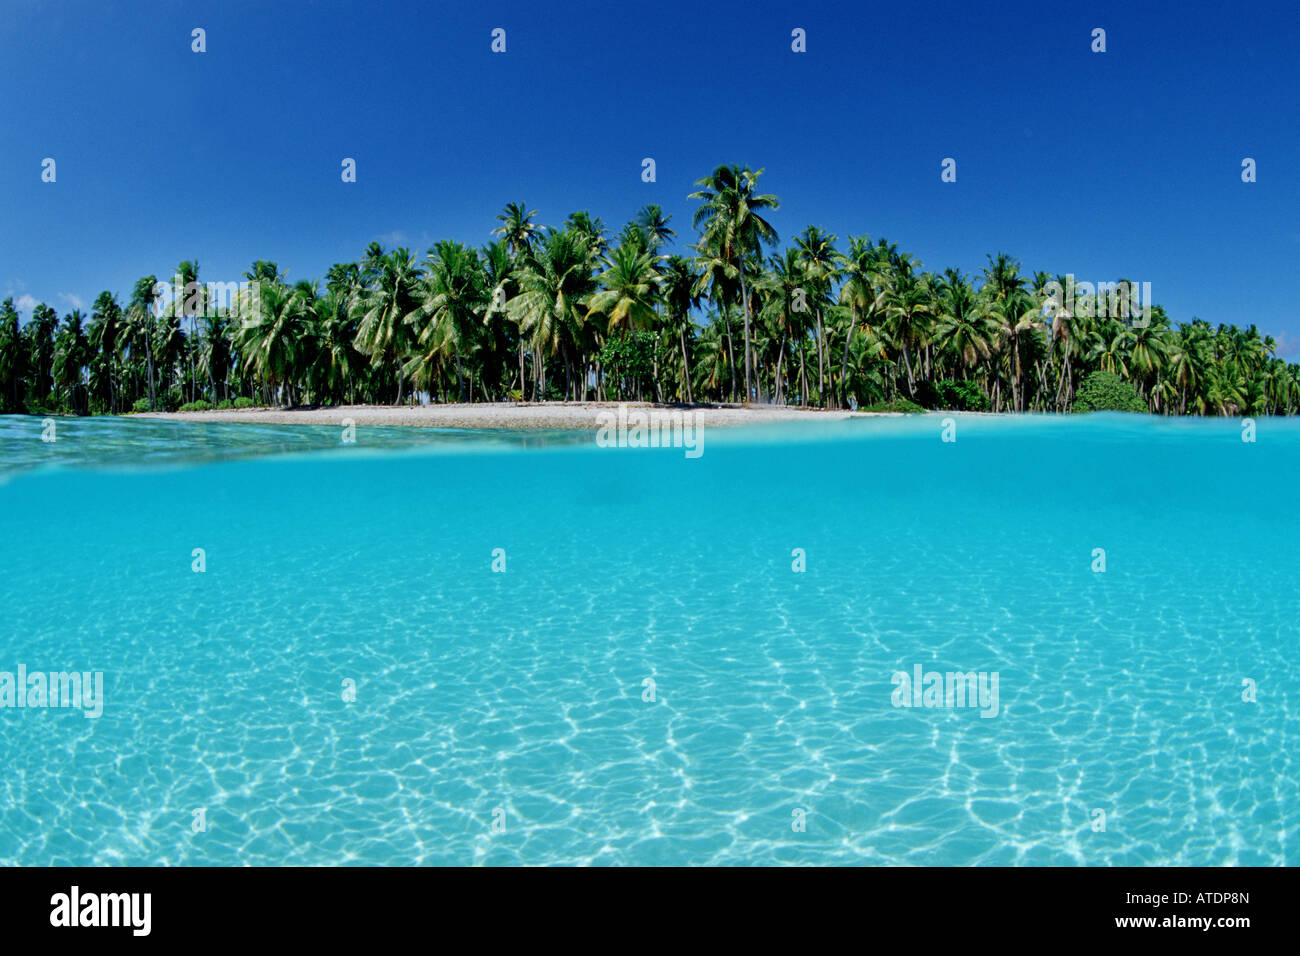 the tropical pacific is known for its scenic landscapes of palm